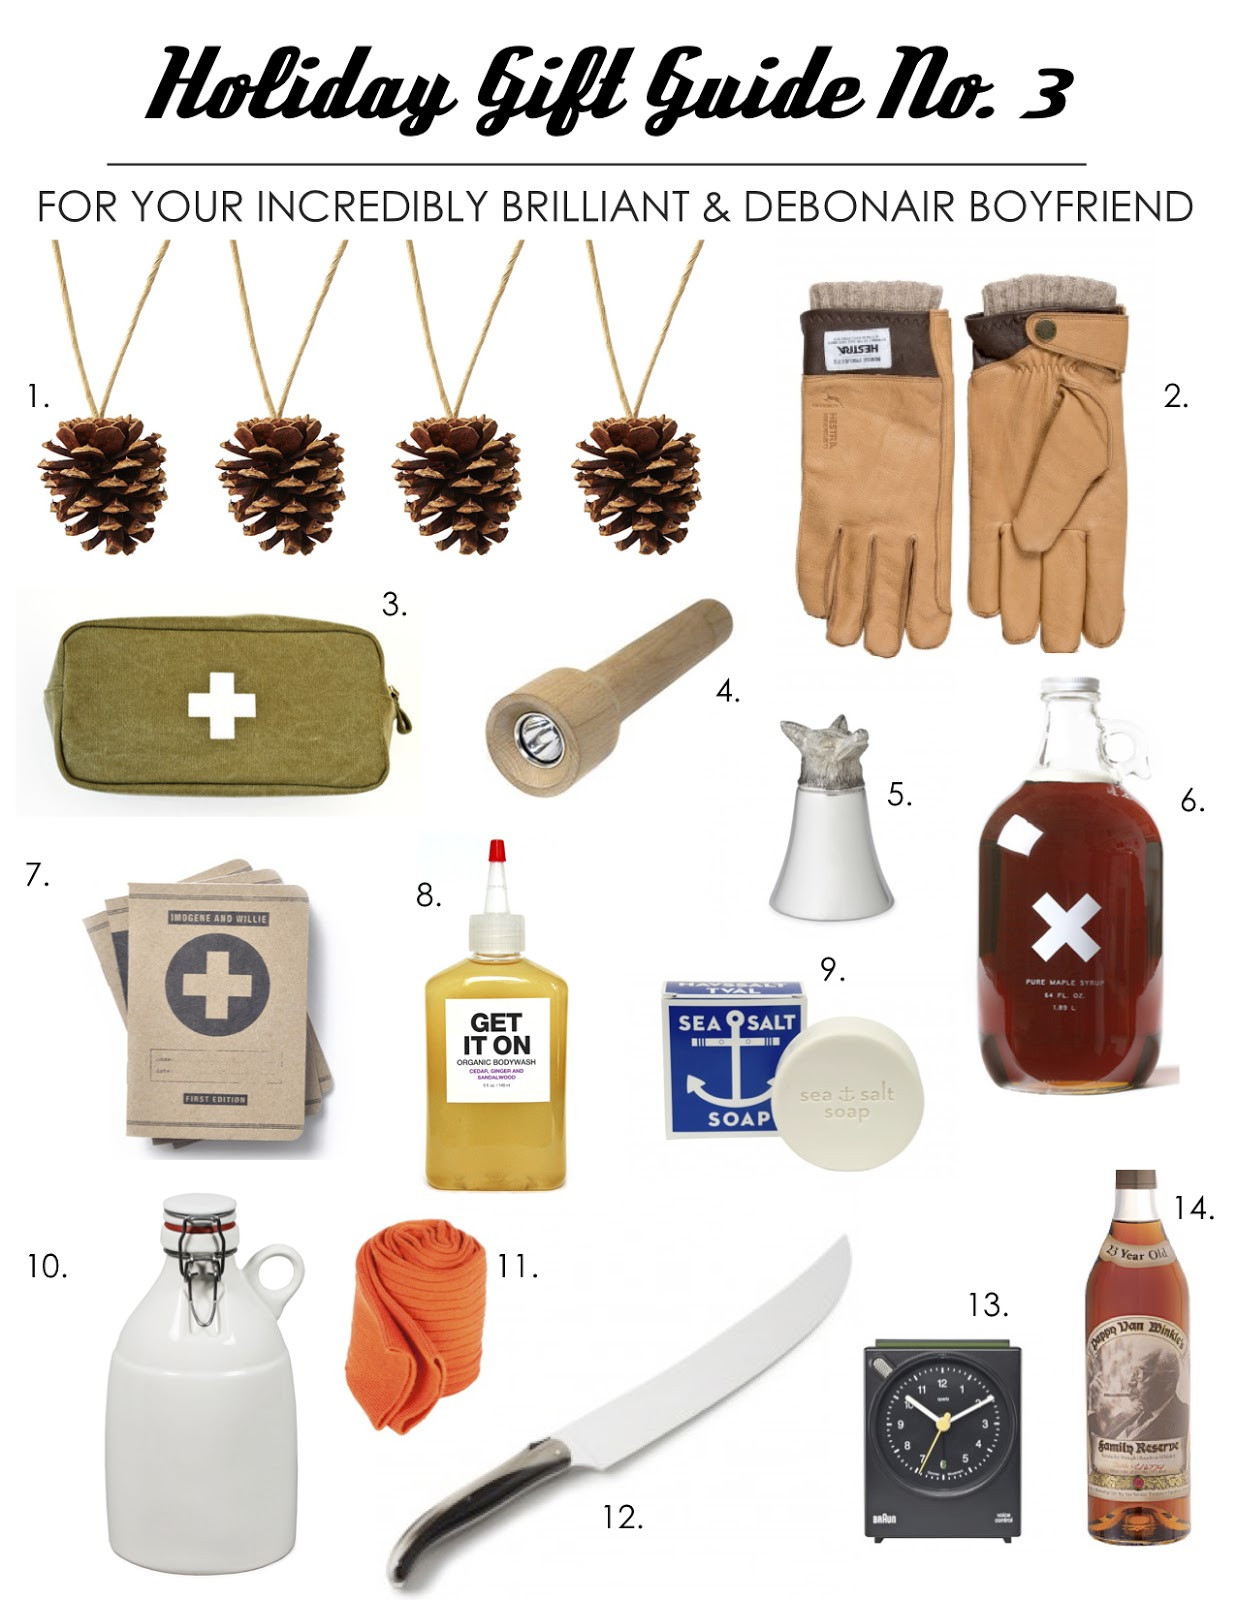 Great Gift Ideas For Boyfriend  Gift Guide 2012 The Best Gifts for Your Boyfriend Hey